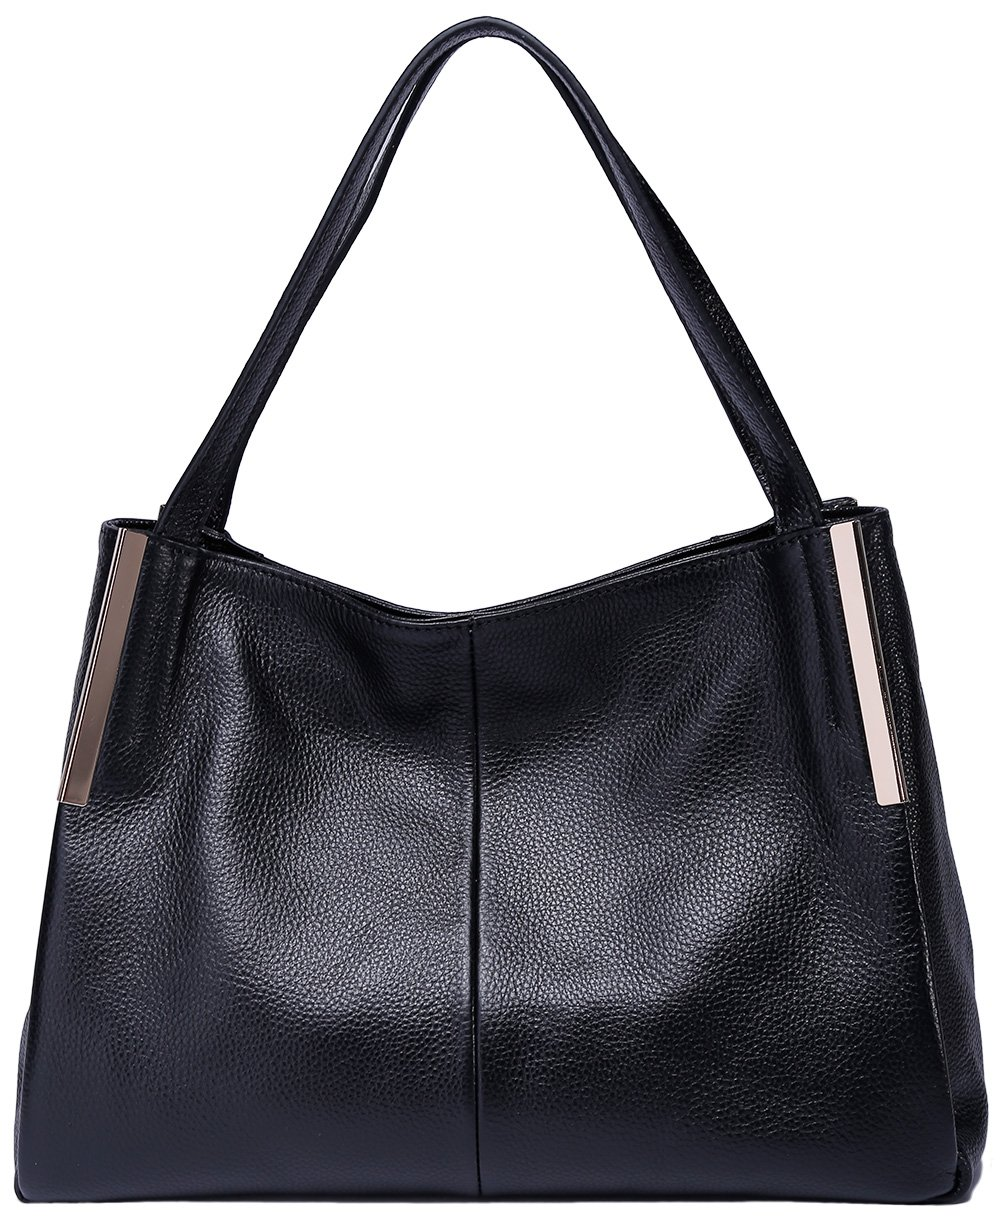 BOYATU Fashion Women Leather Shoulder Bag Commuter Business Package Casual Tote (Black)